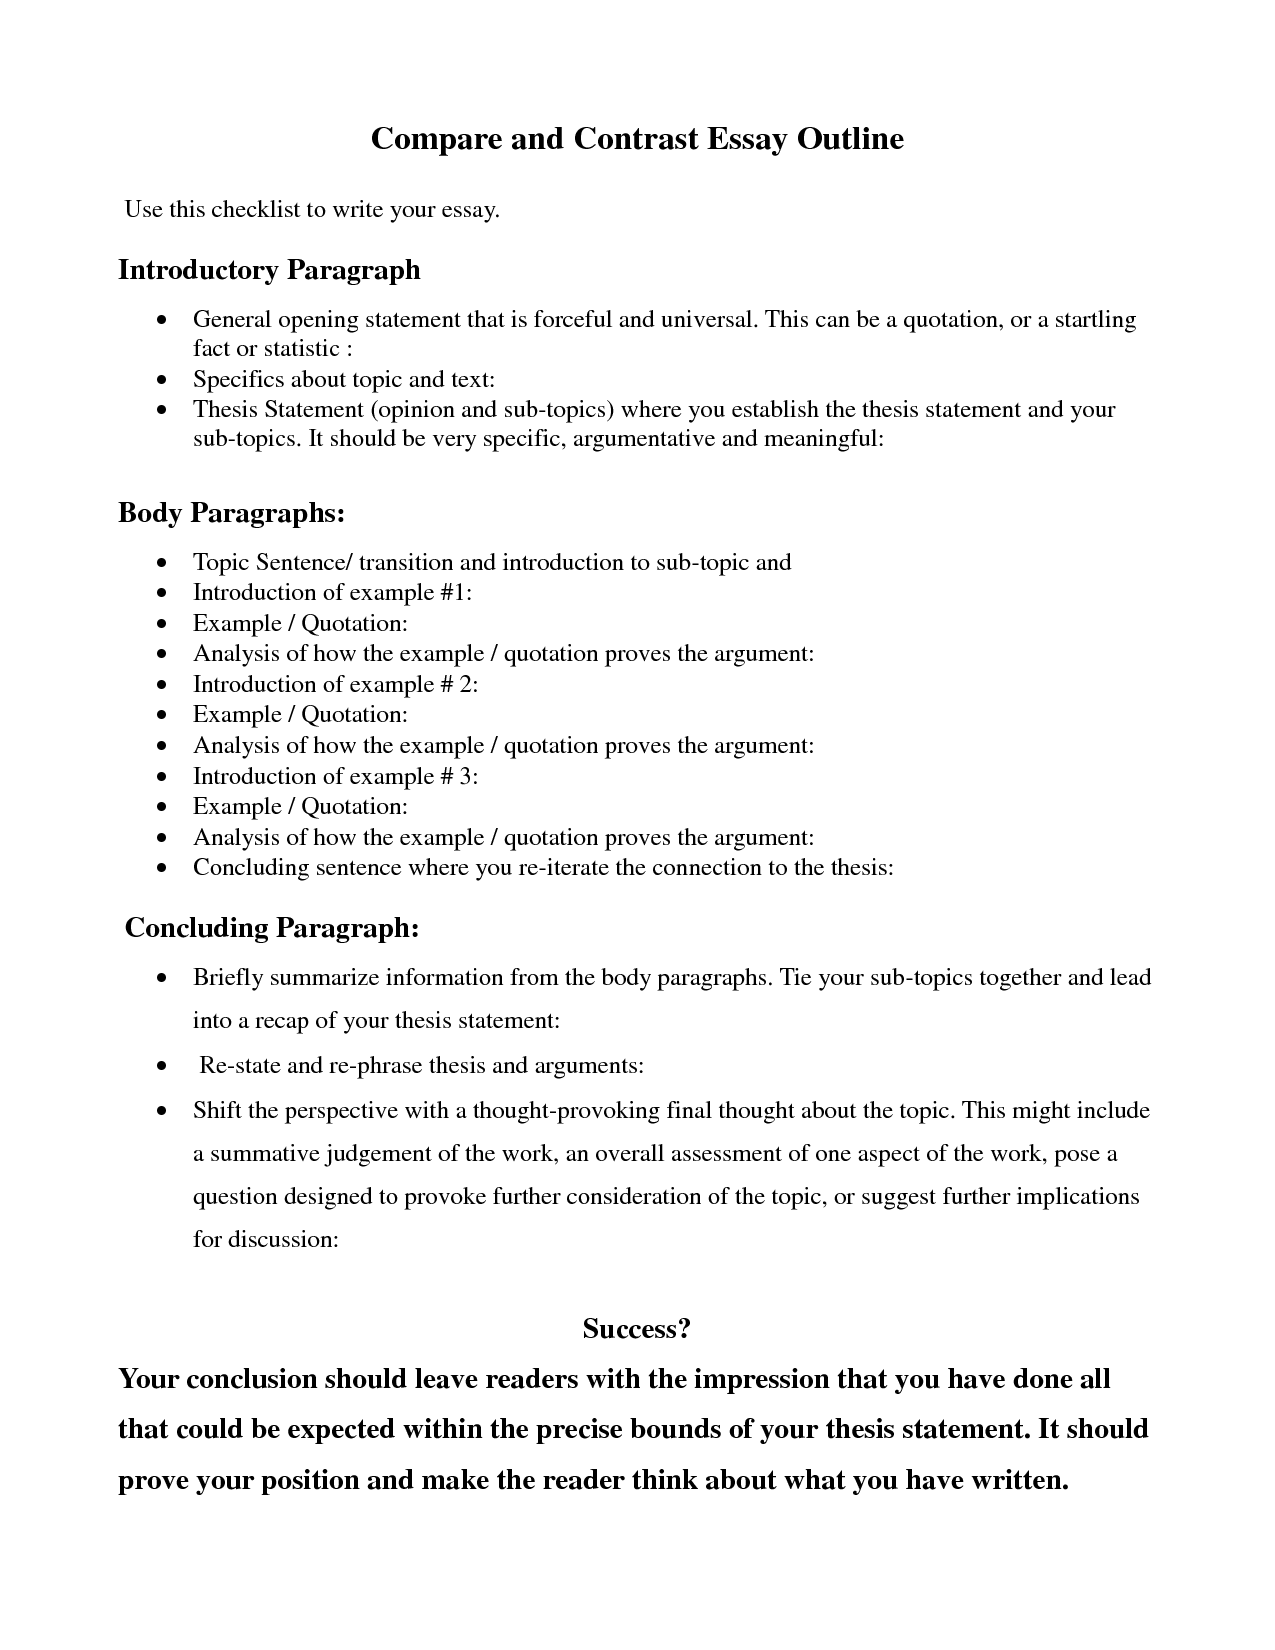 Business Plan Essay Comparecontrast Essay Outline  Google Search Essay On Terrorism In English also Essay Writing Paper Comparecontrast Essay Outline  Google Search  Education  Thesis  Essay On Science And Society